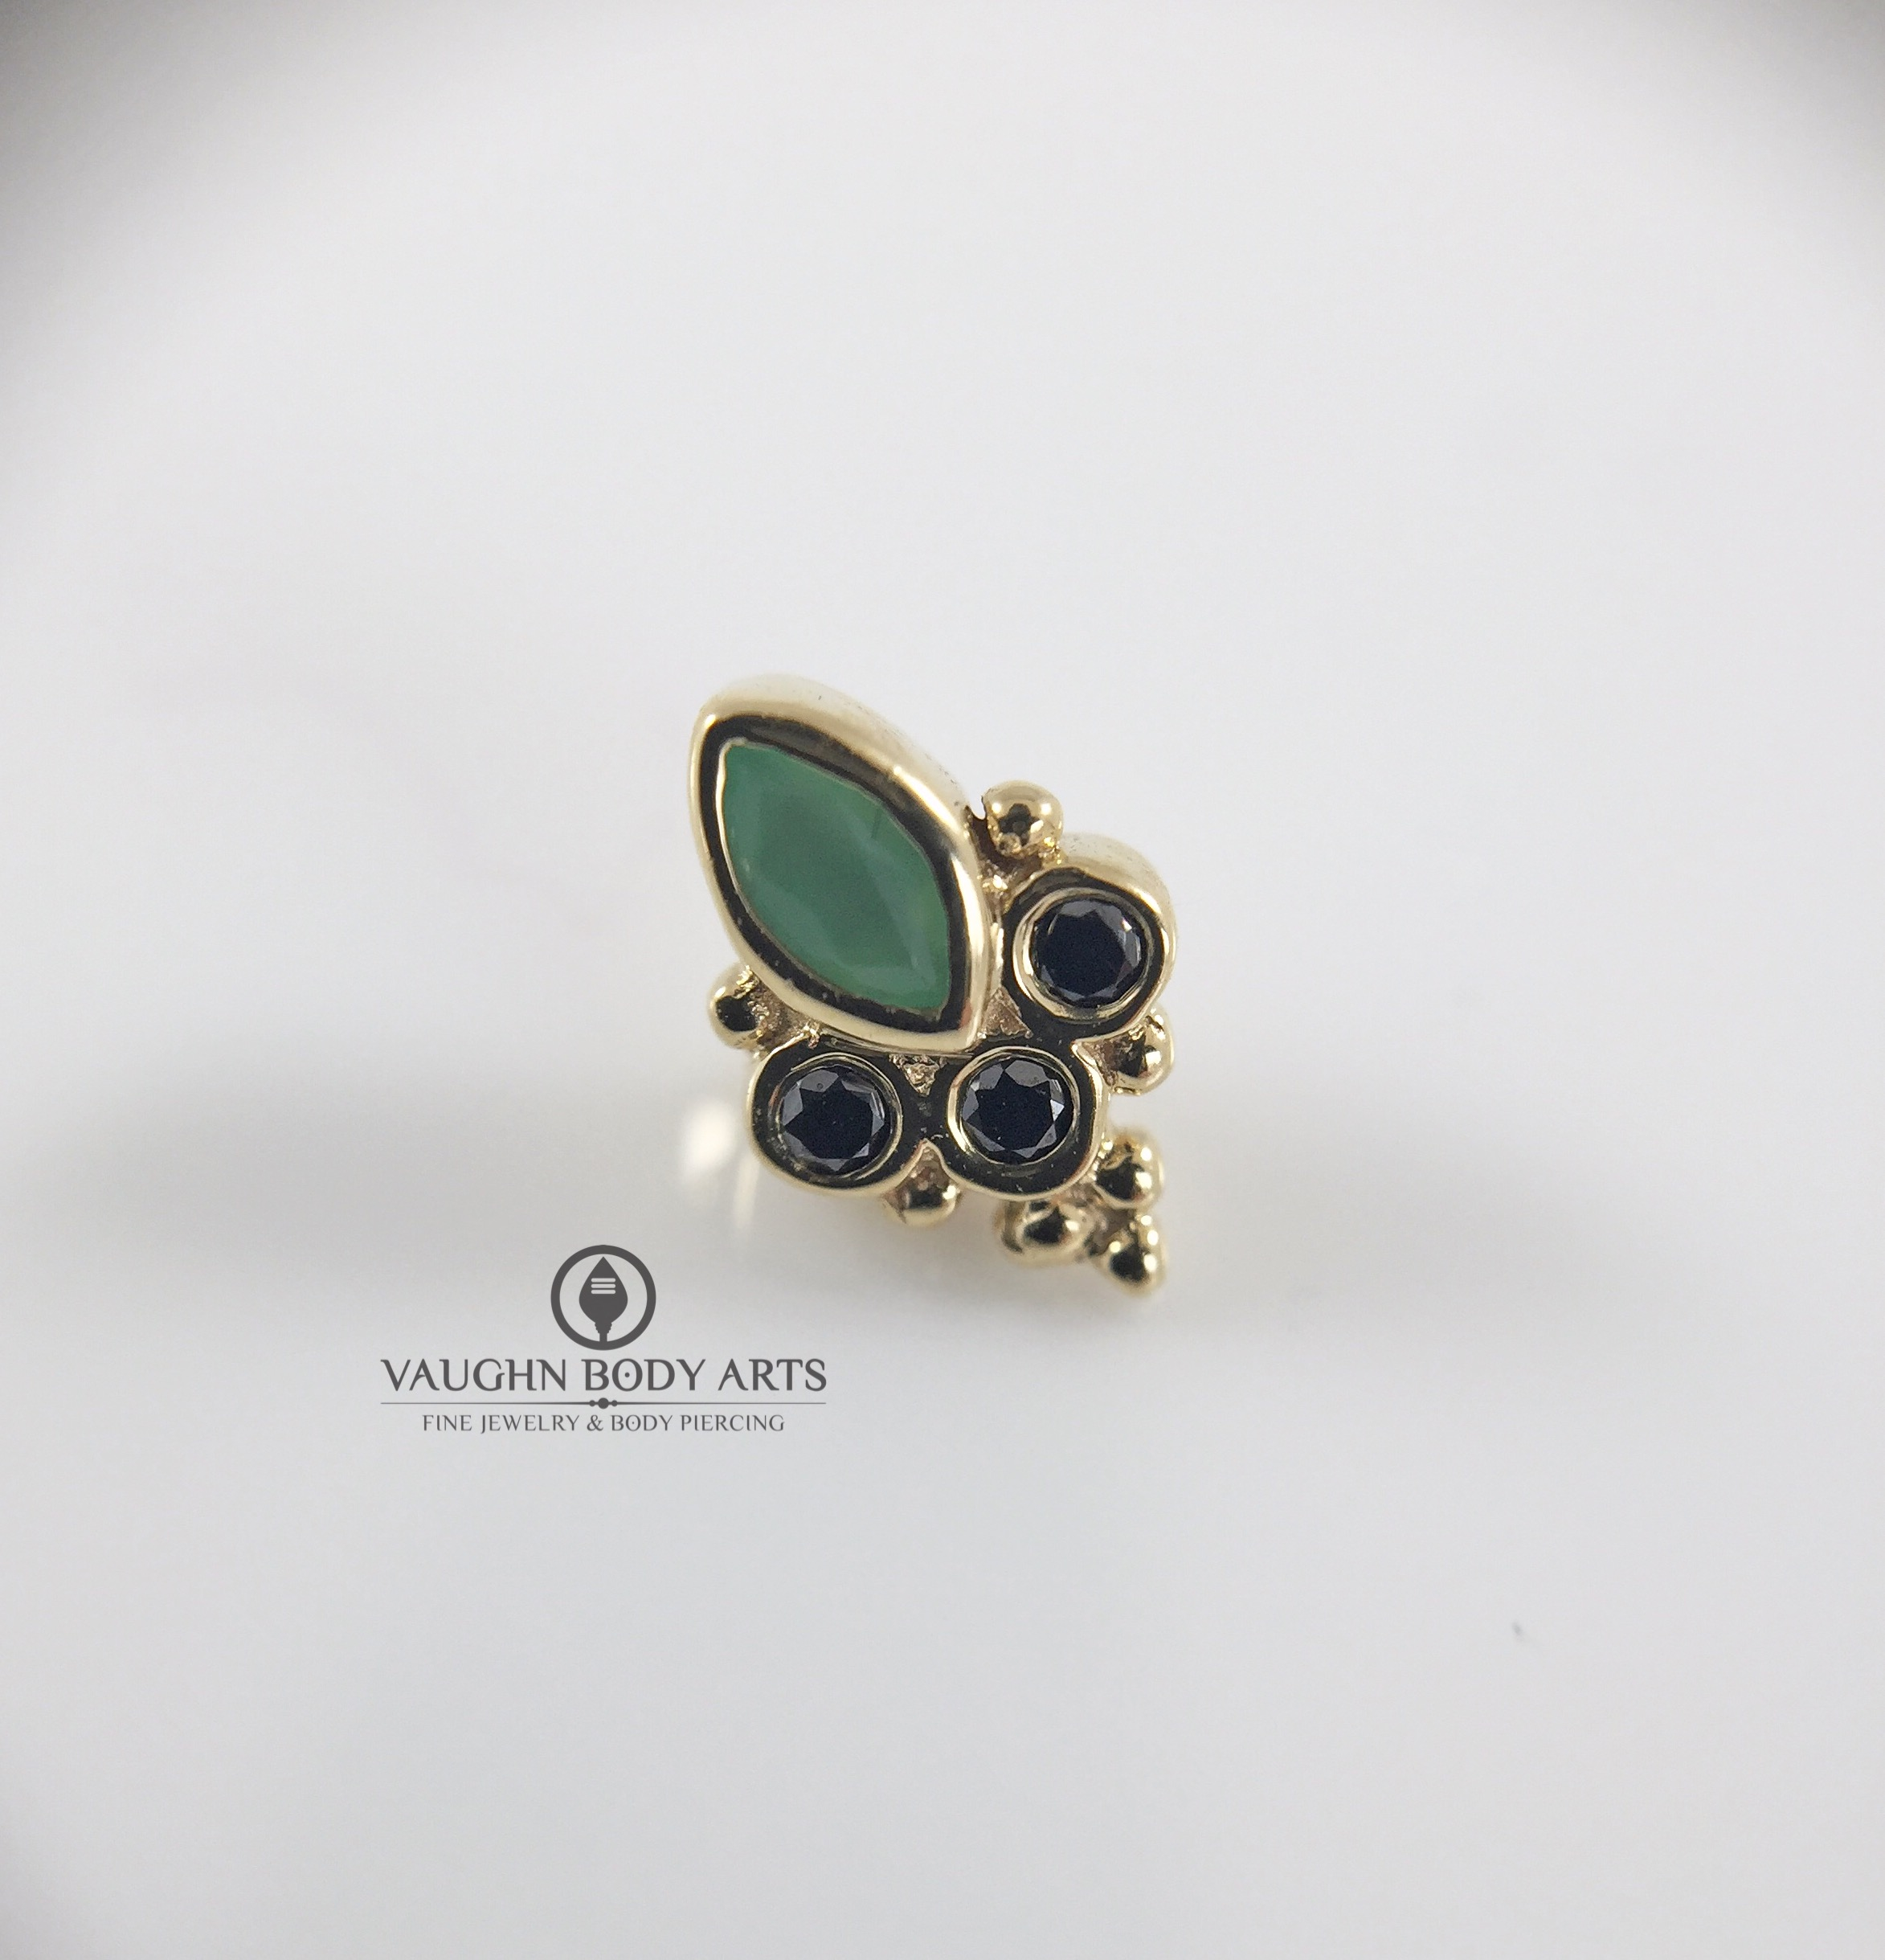 """Marquise Sarai"" end from BVLA in 14k yellow gold featuring a marquise-cut chrysoprase and genuine black diamonds."